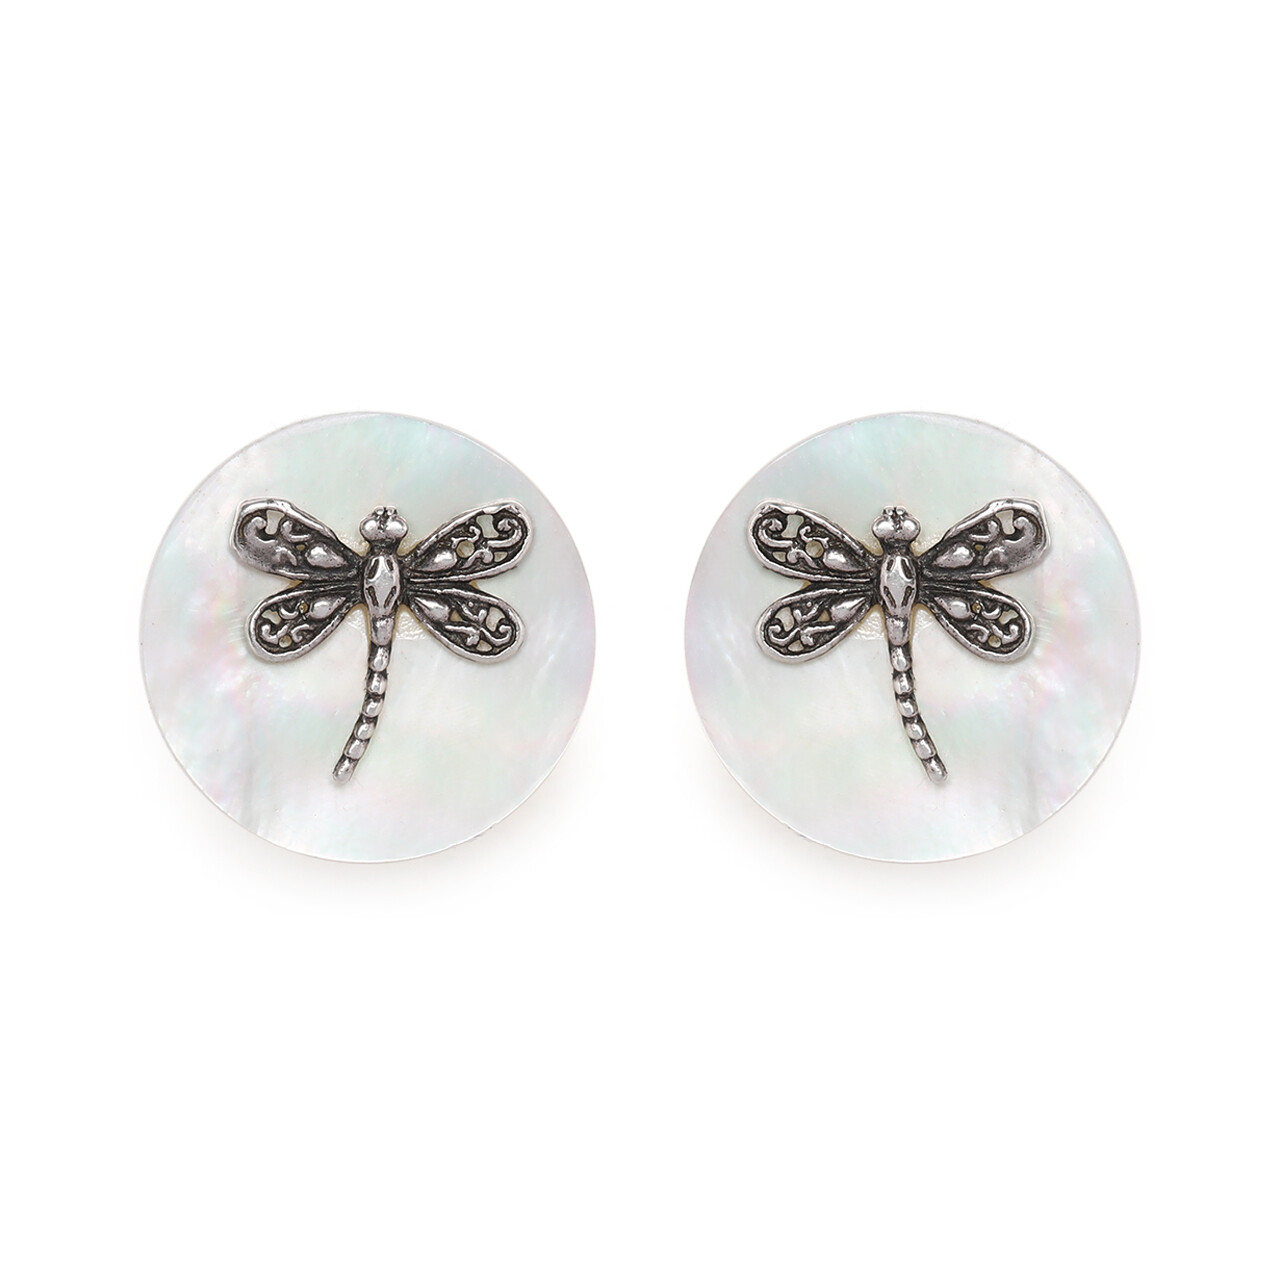 IndusDiva Round shaped Mother of Pearl With Dragonfly